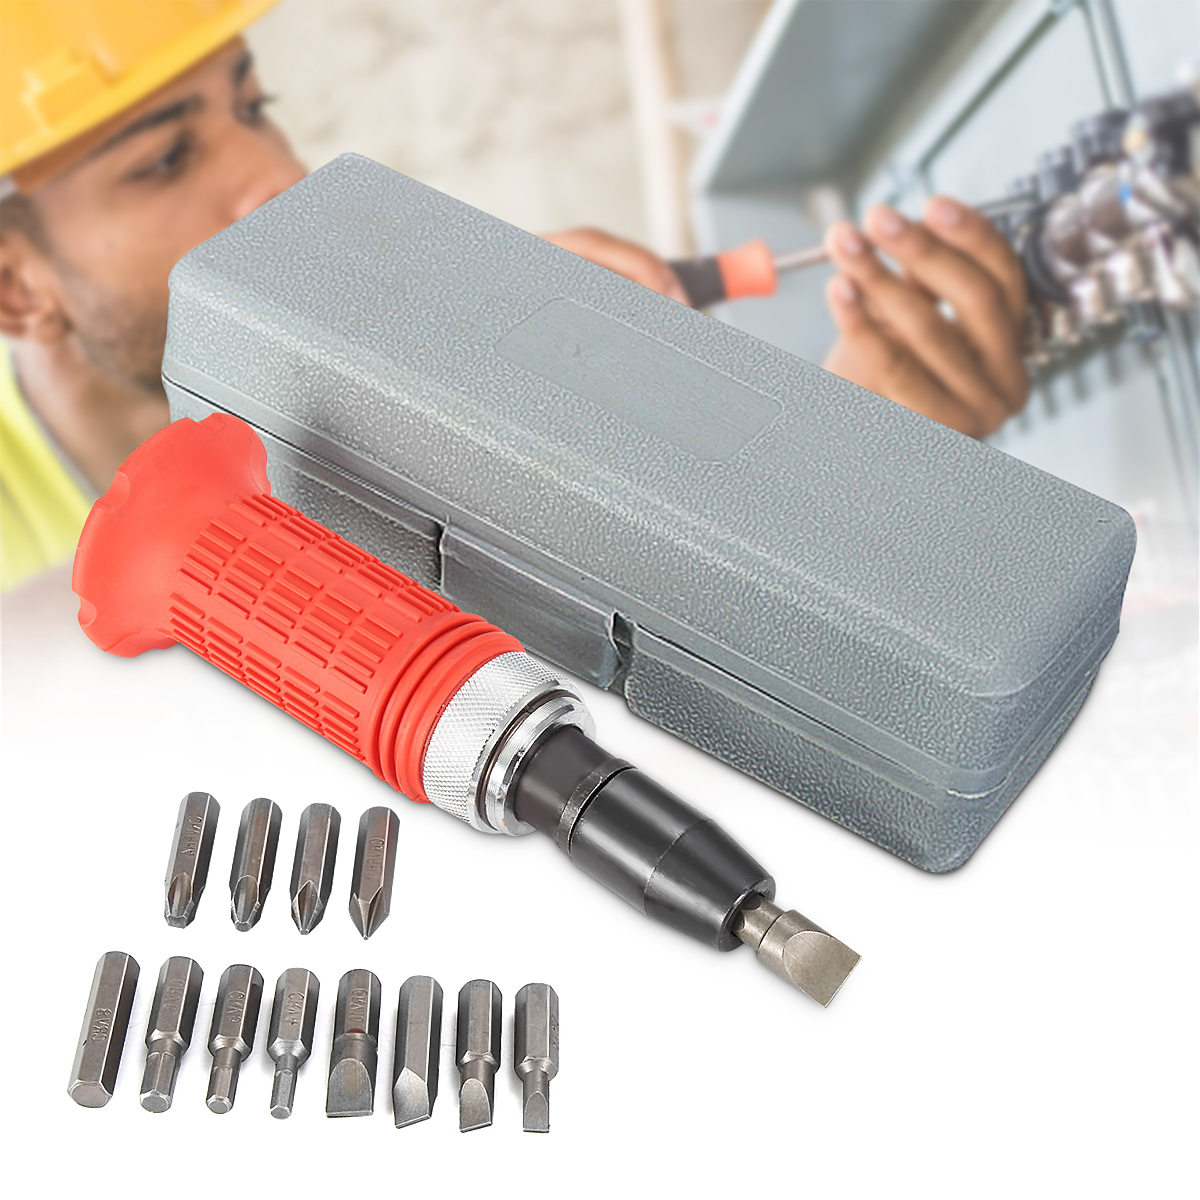 Multi-purpose Impact Screwdriver Set Driver Carbon Steel Multi Bits Hammer Socket Repair Kit Storage Box Screwdriver Head Set